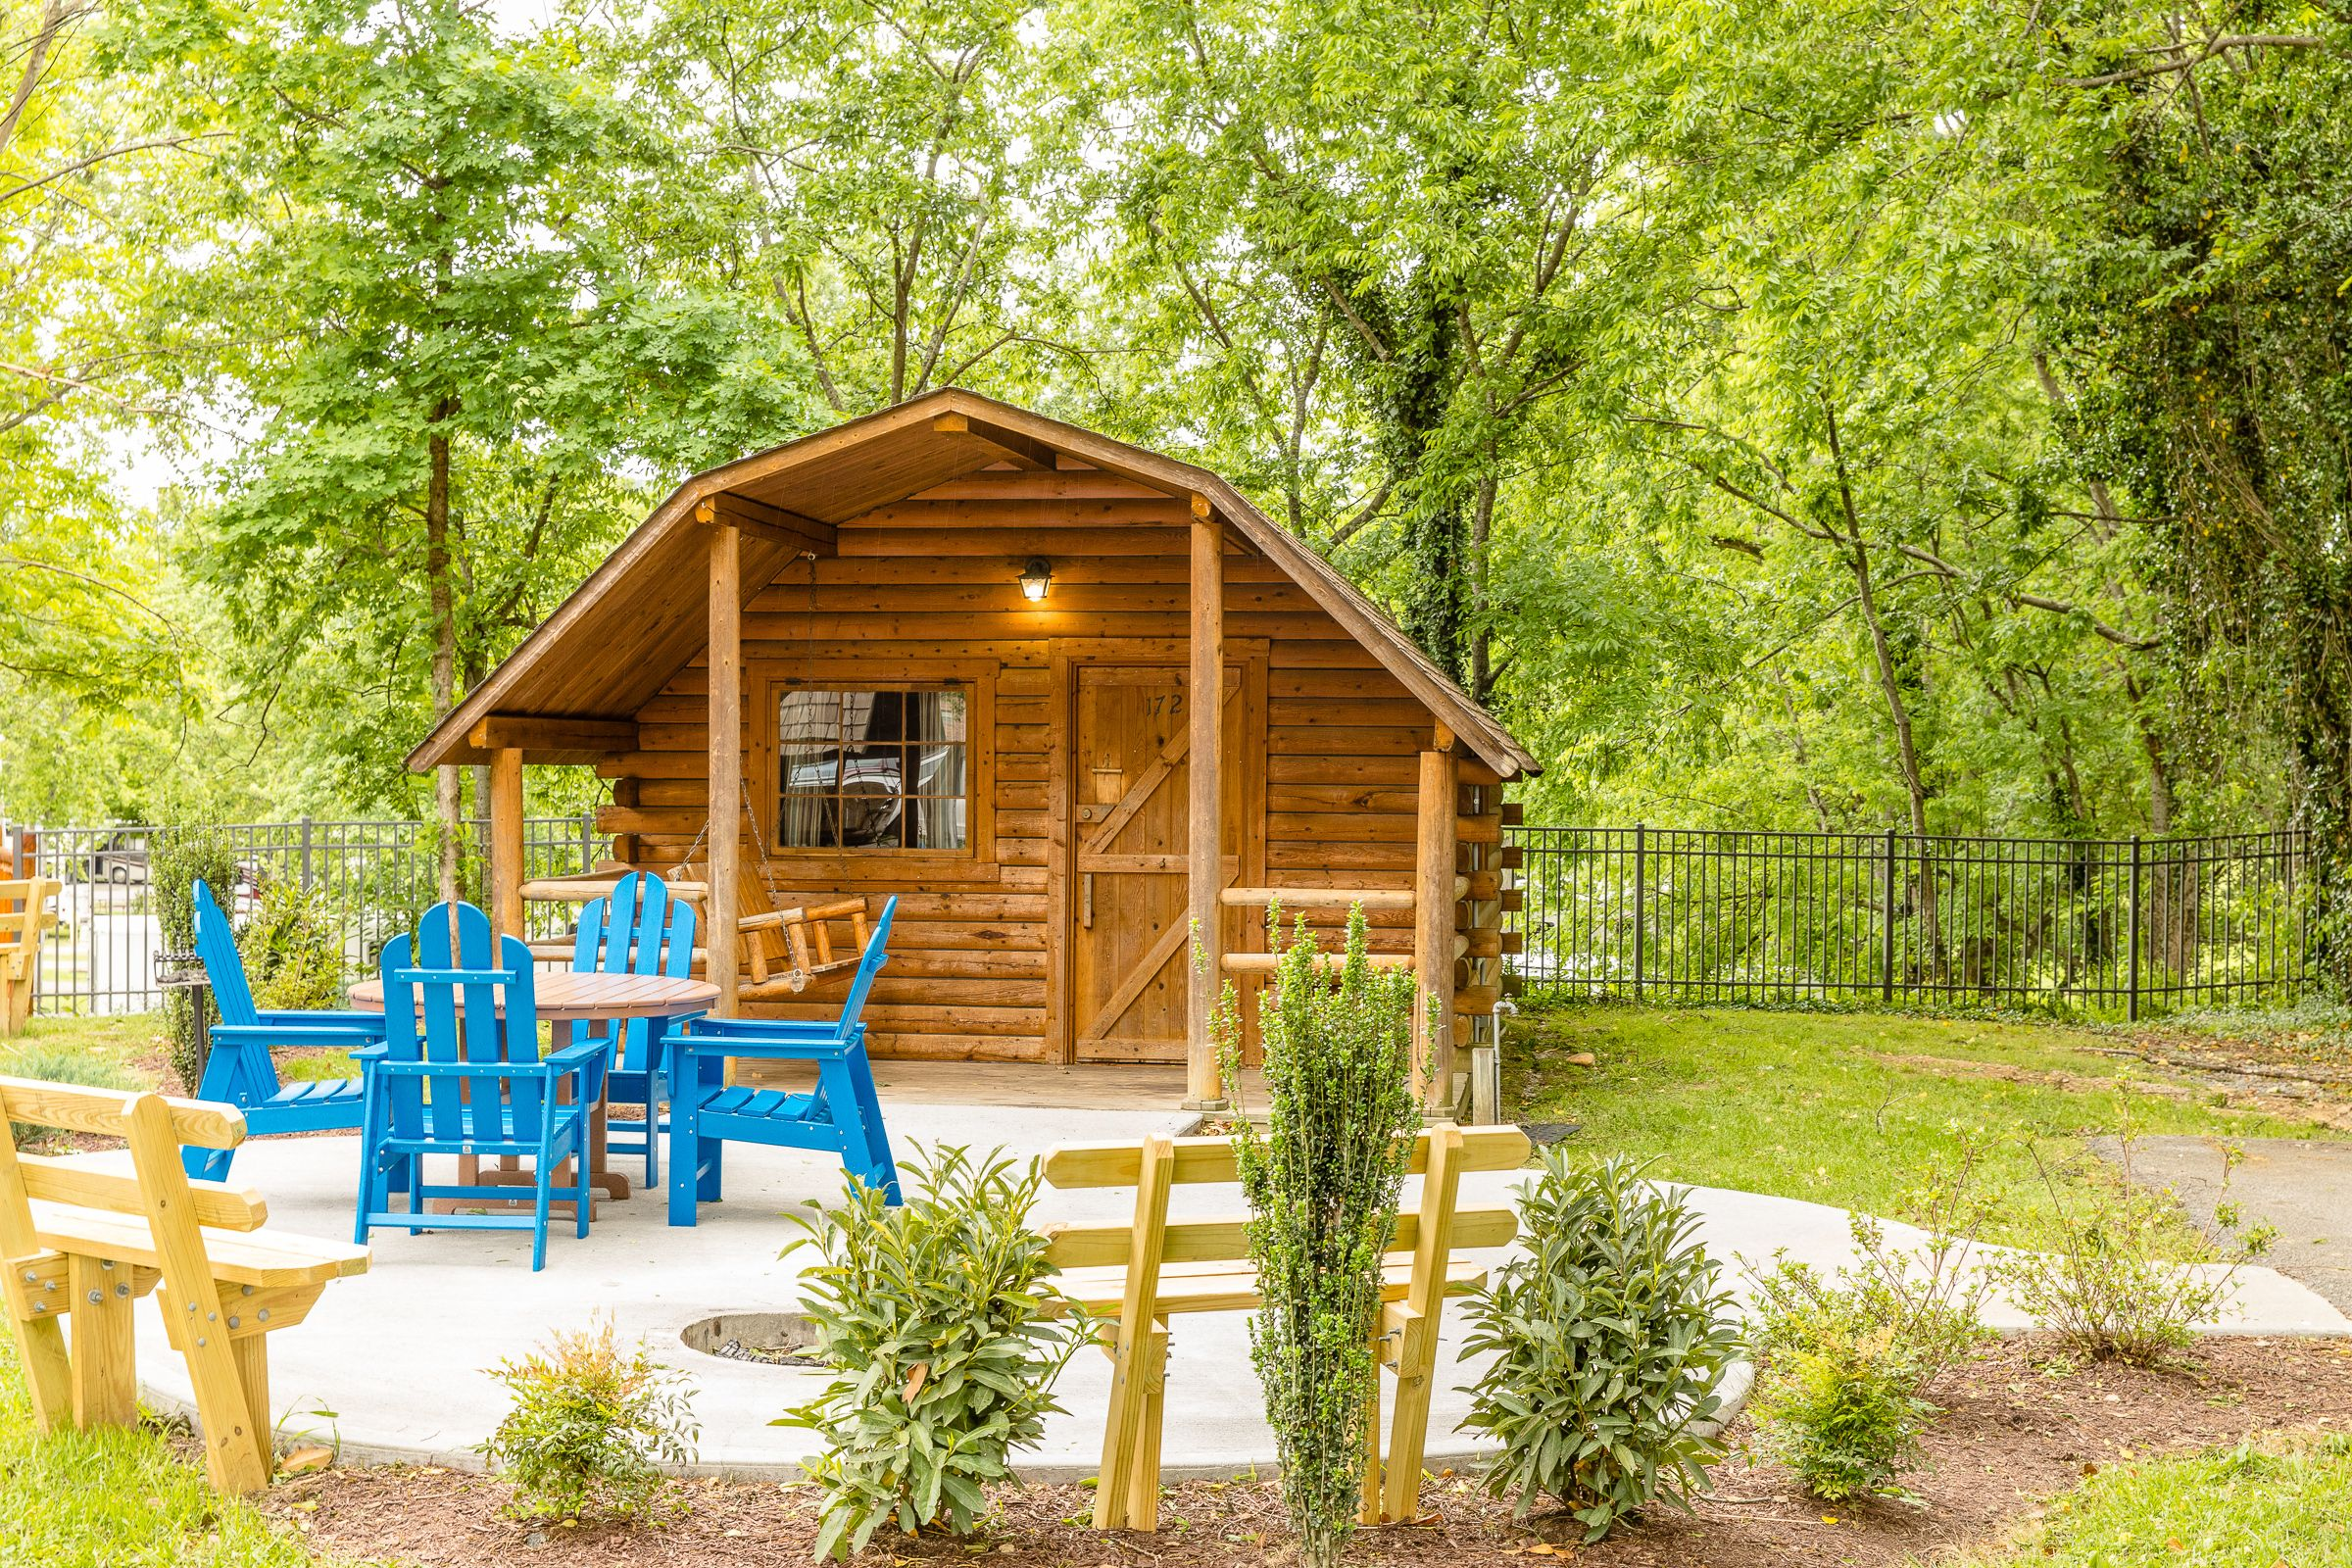 accomodation in rental cabin cabins camping virginia accommodations